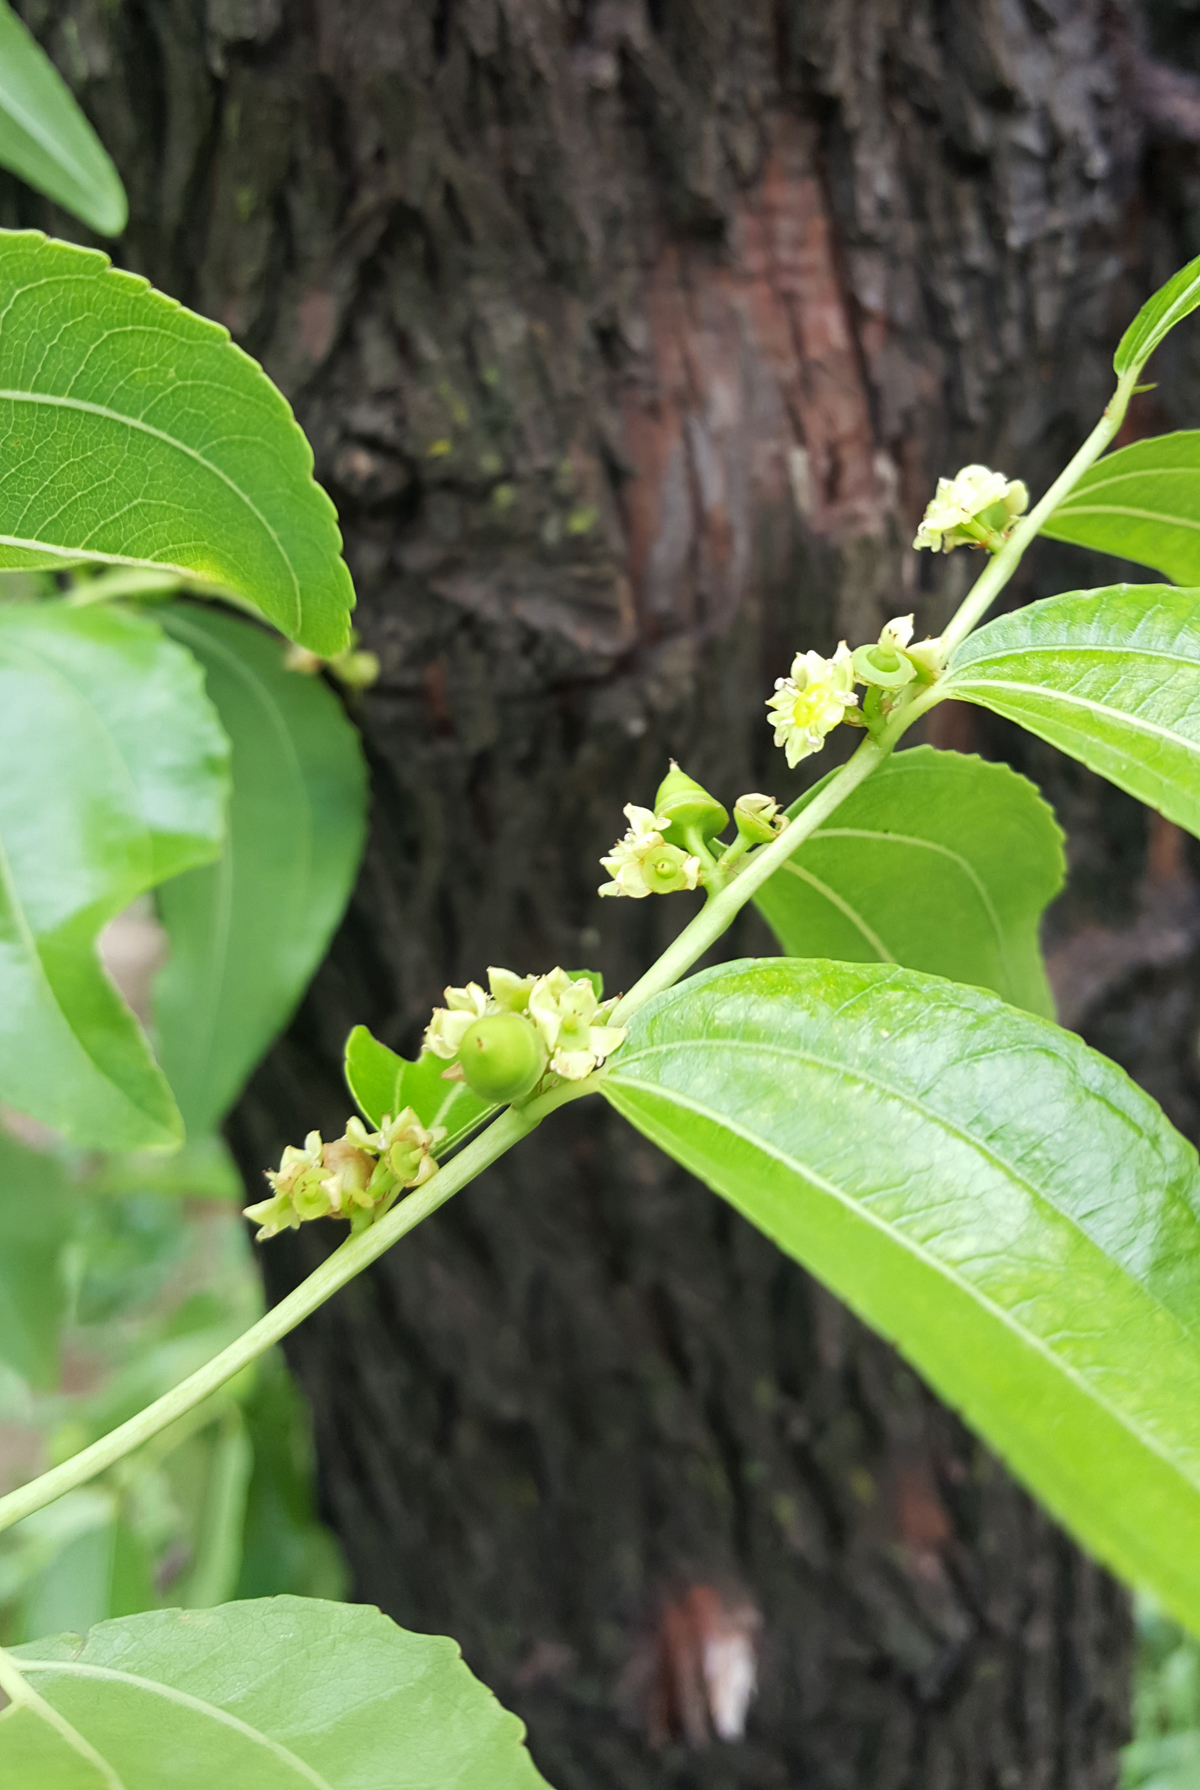 What are the benefits of jujube leaves in medical?